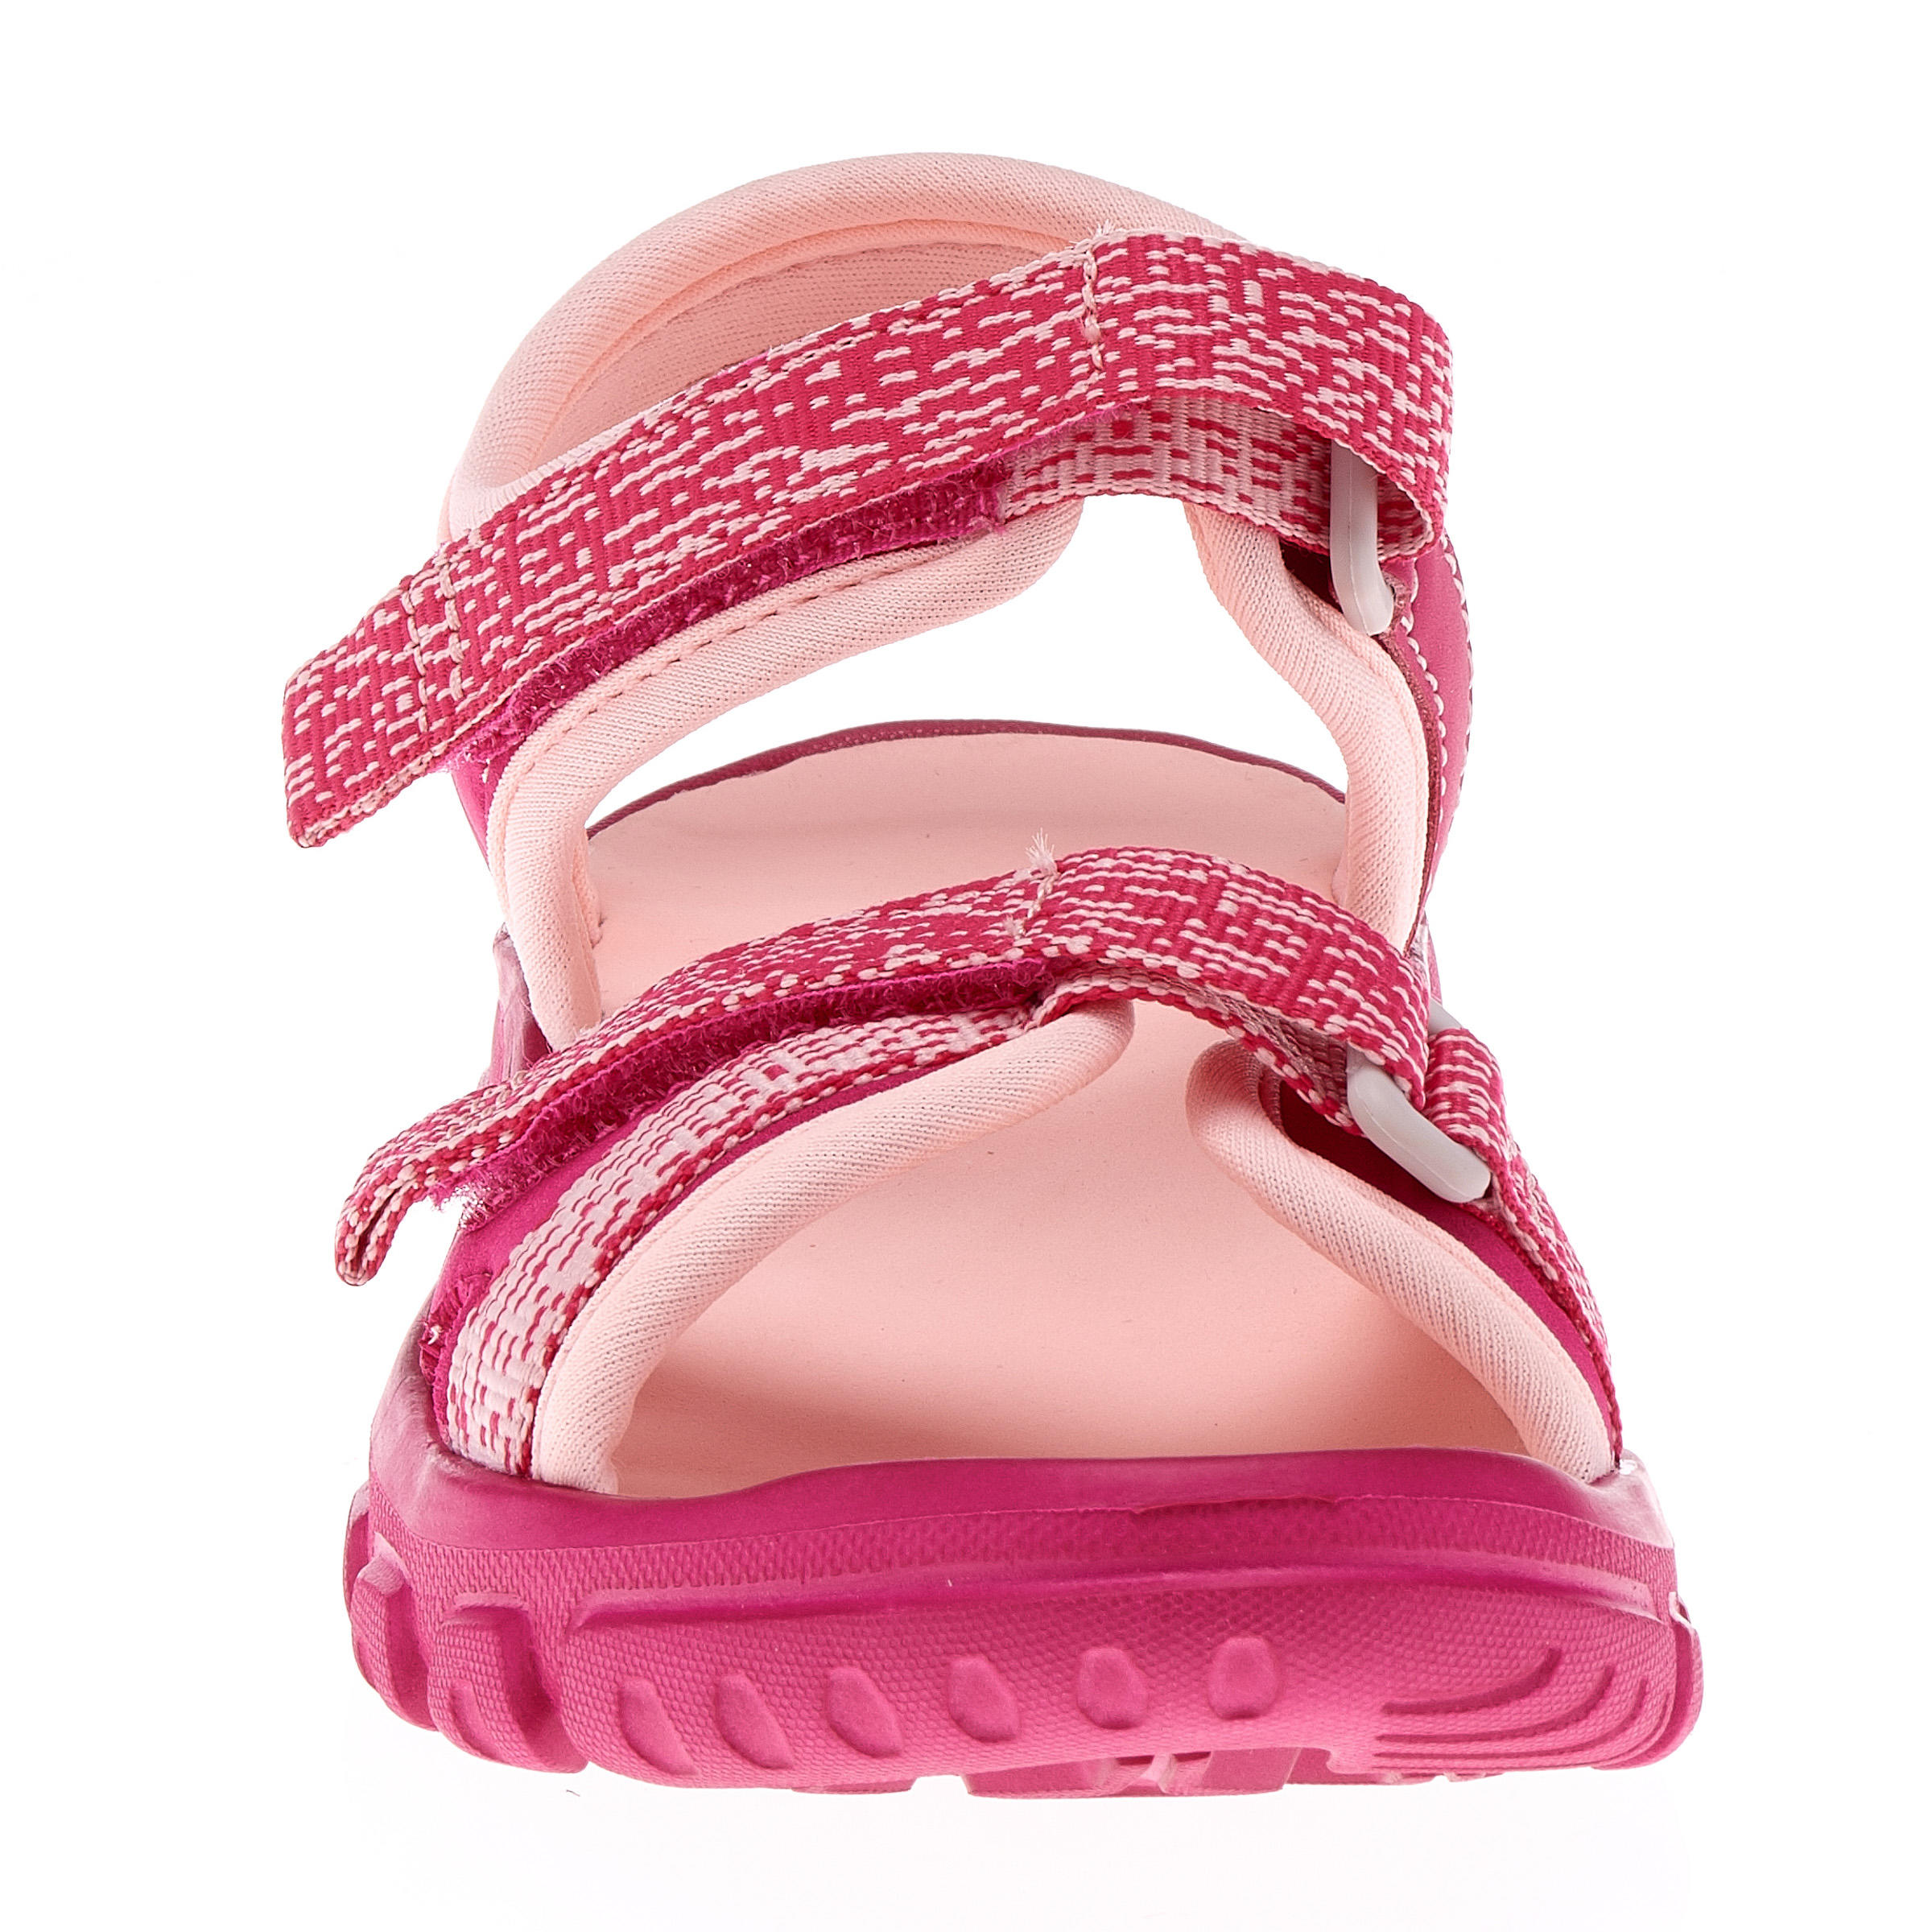 Kid's Sandals MH100 - Pink